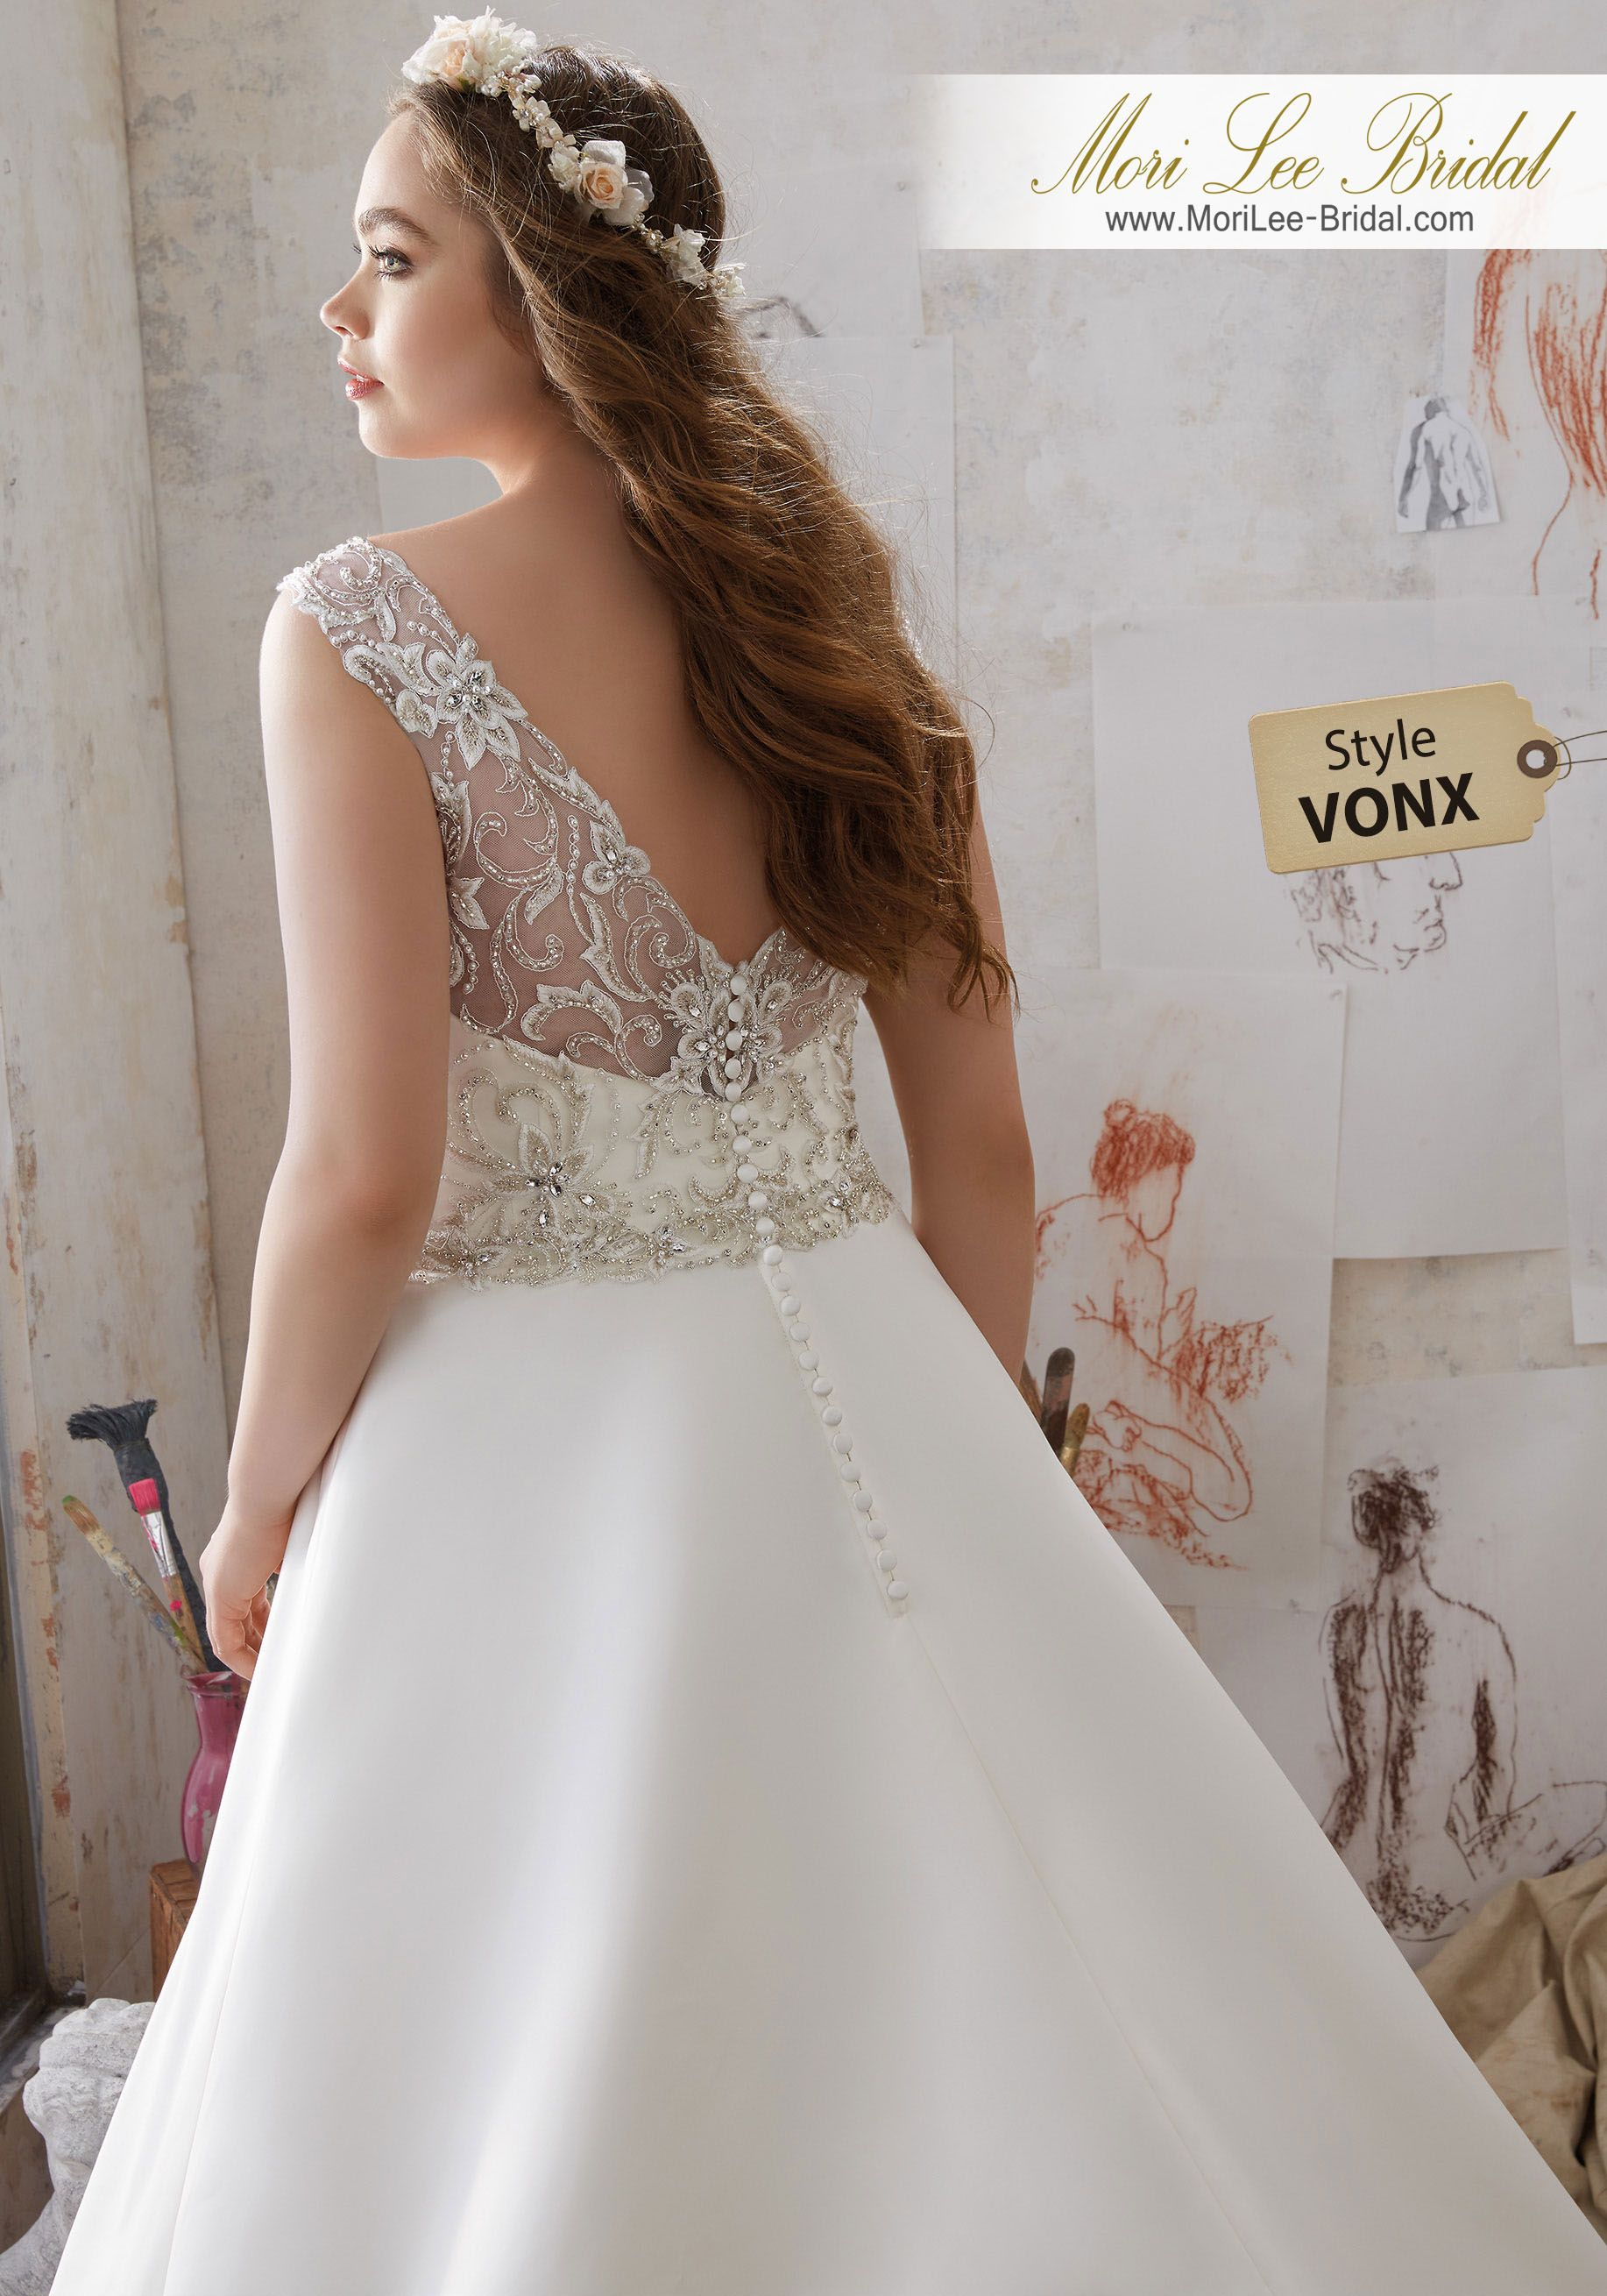 Style Vonx Merida Wedding Dress Simple And Elegant This Duchess Satin Aline Gown Accents The Natural Waist With Crystal Beaded Embroidery: Simple White Wedding Dress Bea At Websimilar.org